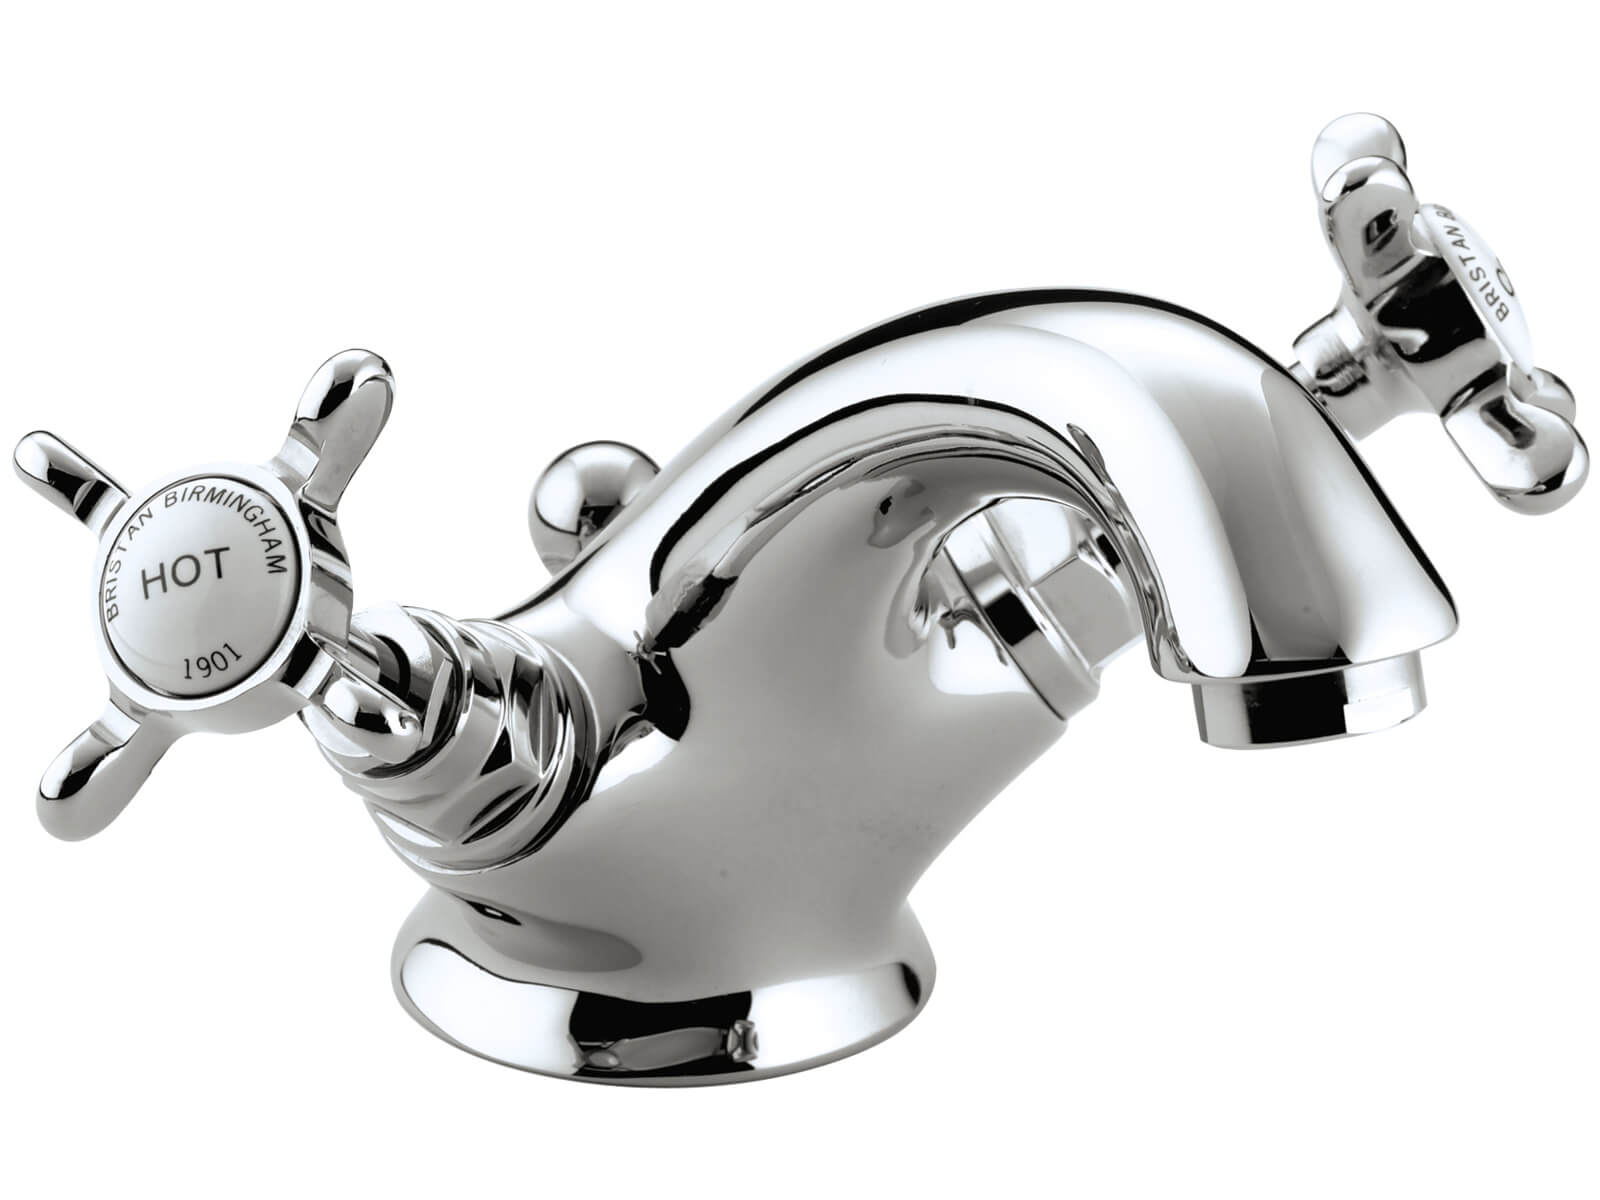 Bristan 1901 Chrome Basin Mixer Tap With Pop Up Waste